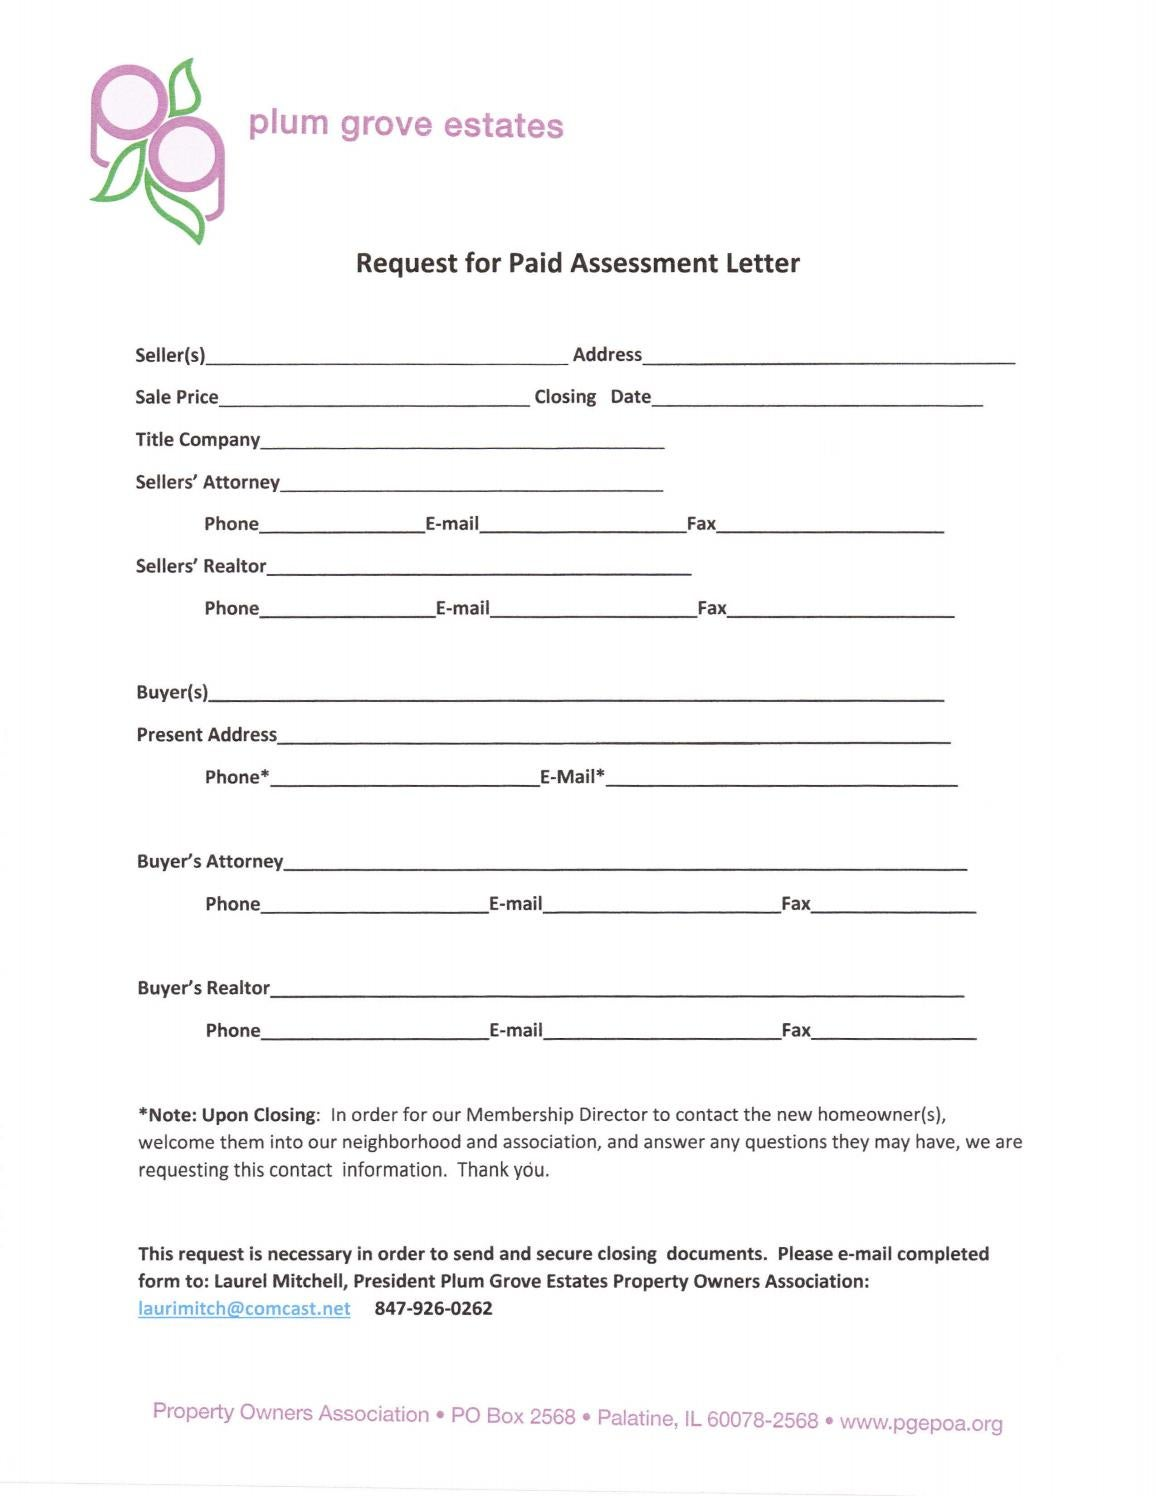 Request for Paid Assessment Letter by PGEPOA Web Admin - issuu